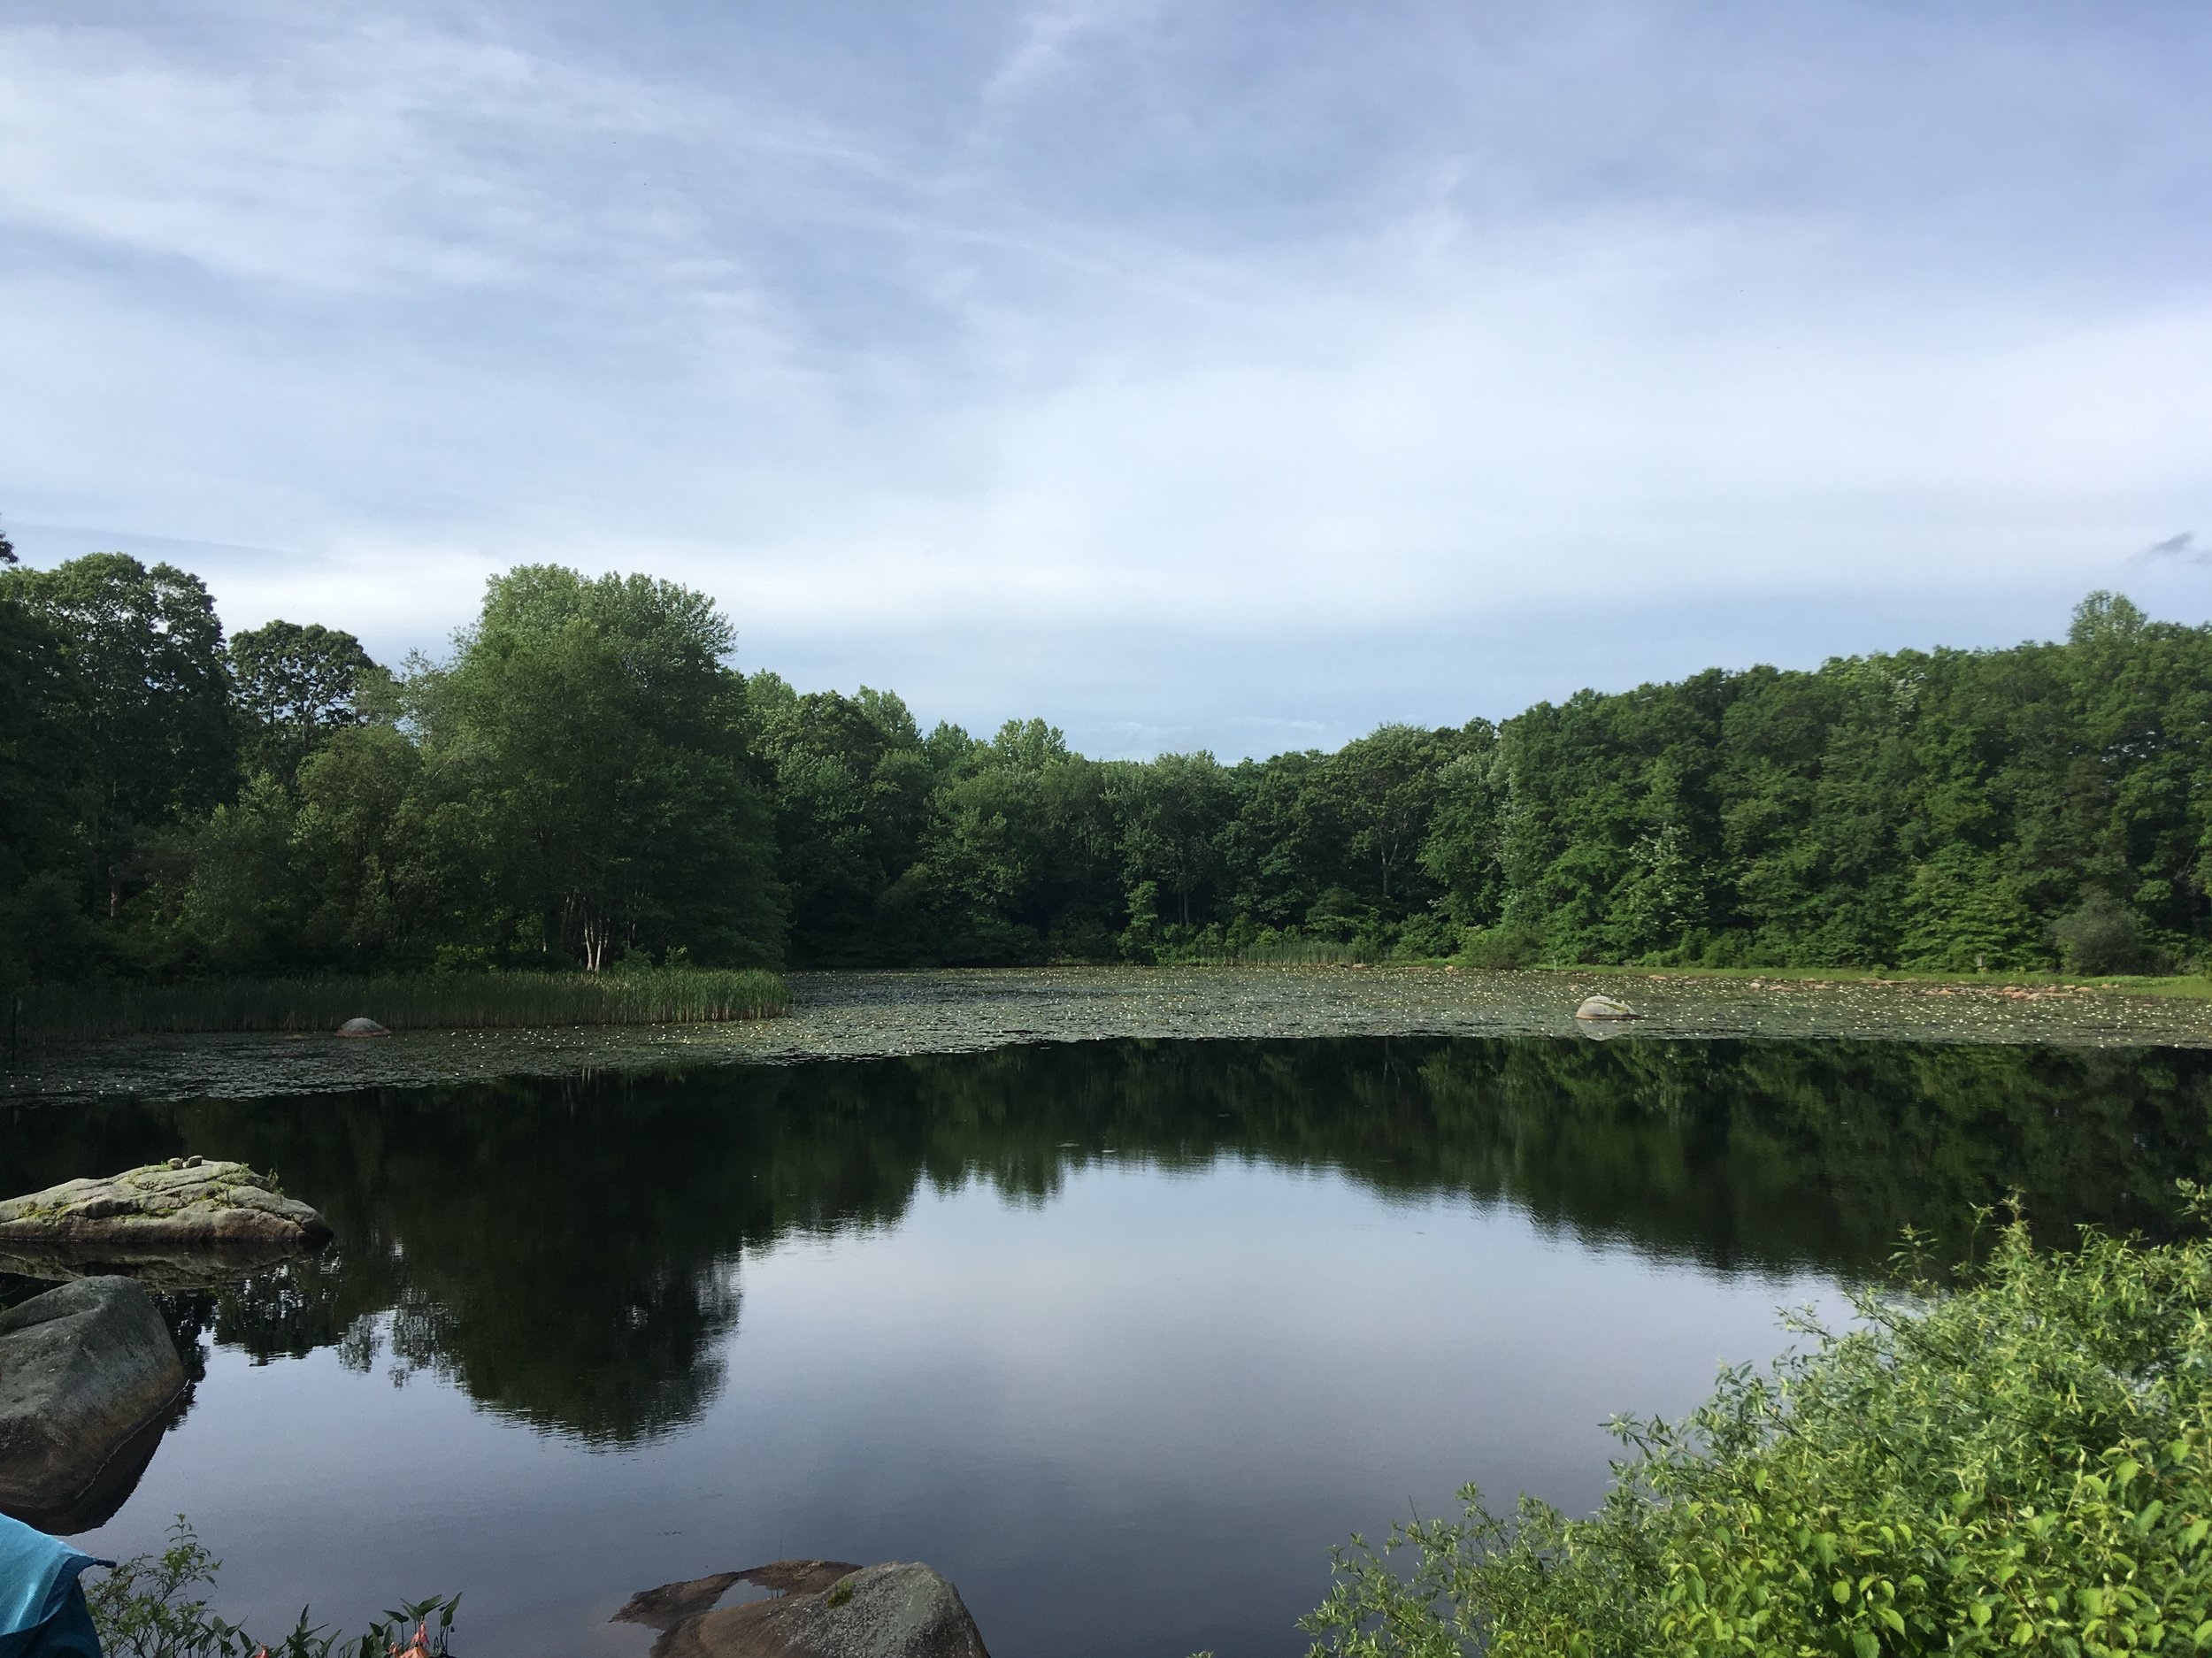 Pond at Arboretum at Connecticut College